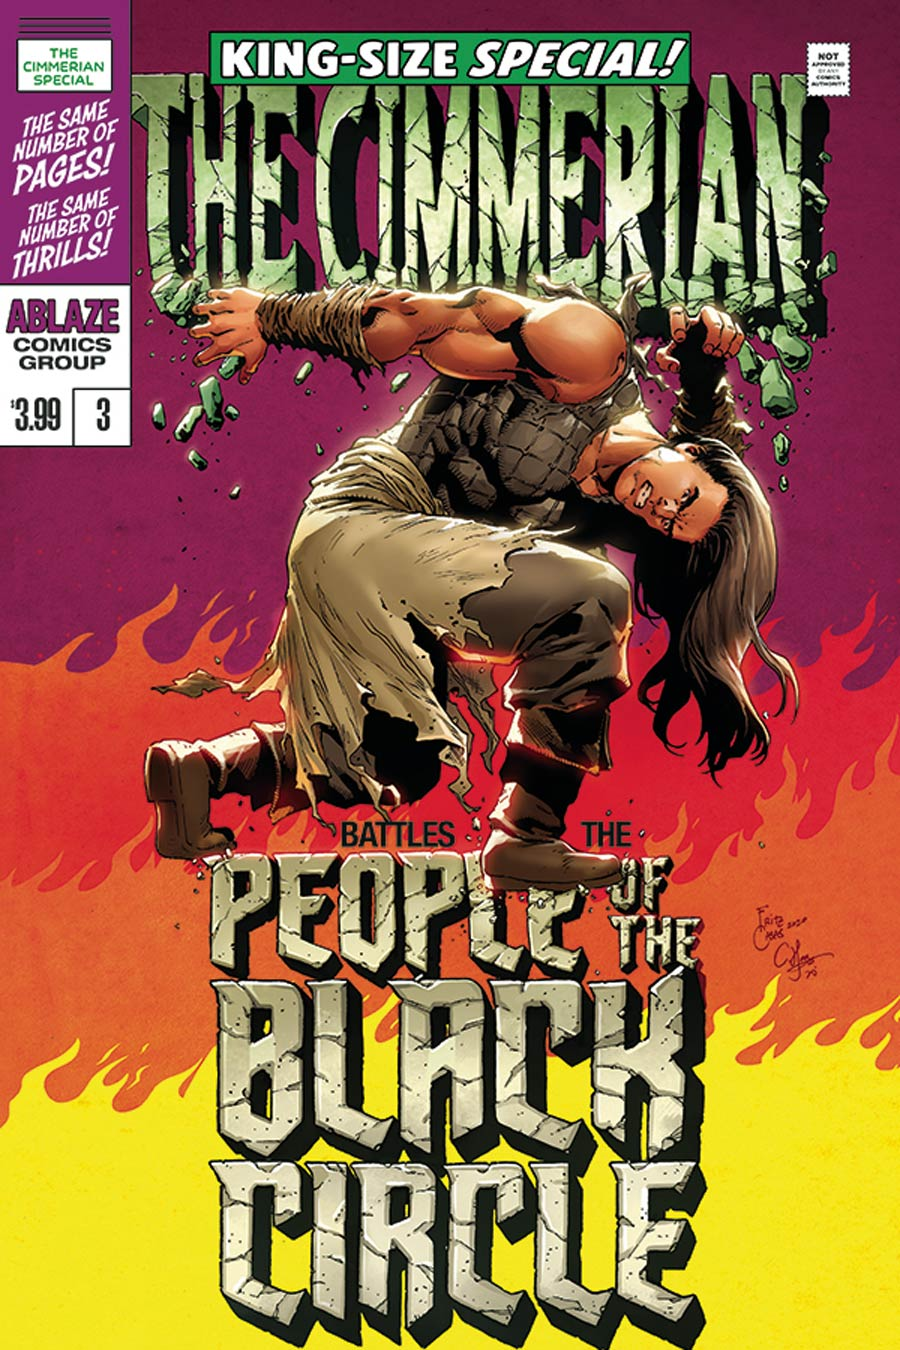 Cimmerian People Of The Black Circle #3 Cover D Variant Fritz Casas King Size Hulk Special Parody Cover